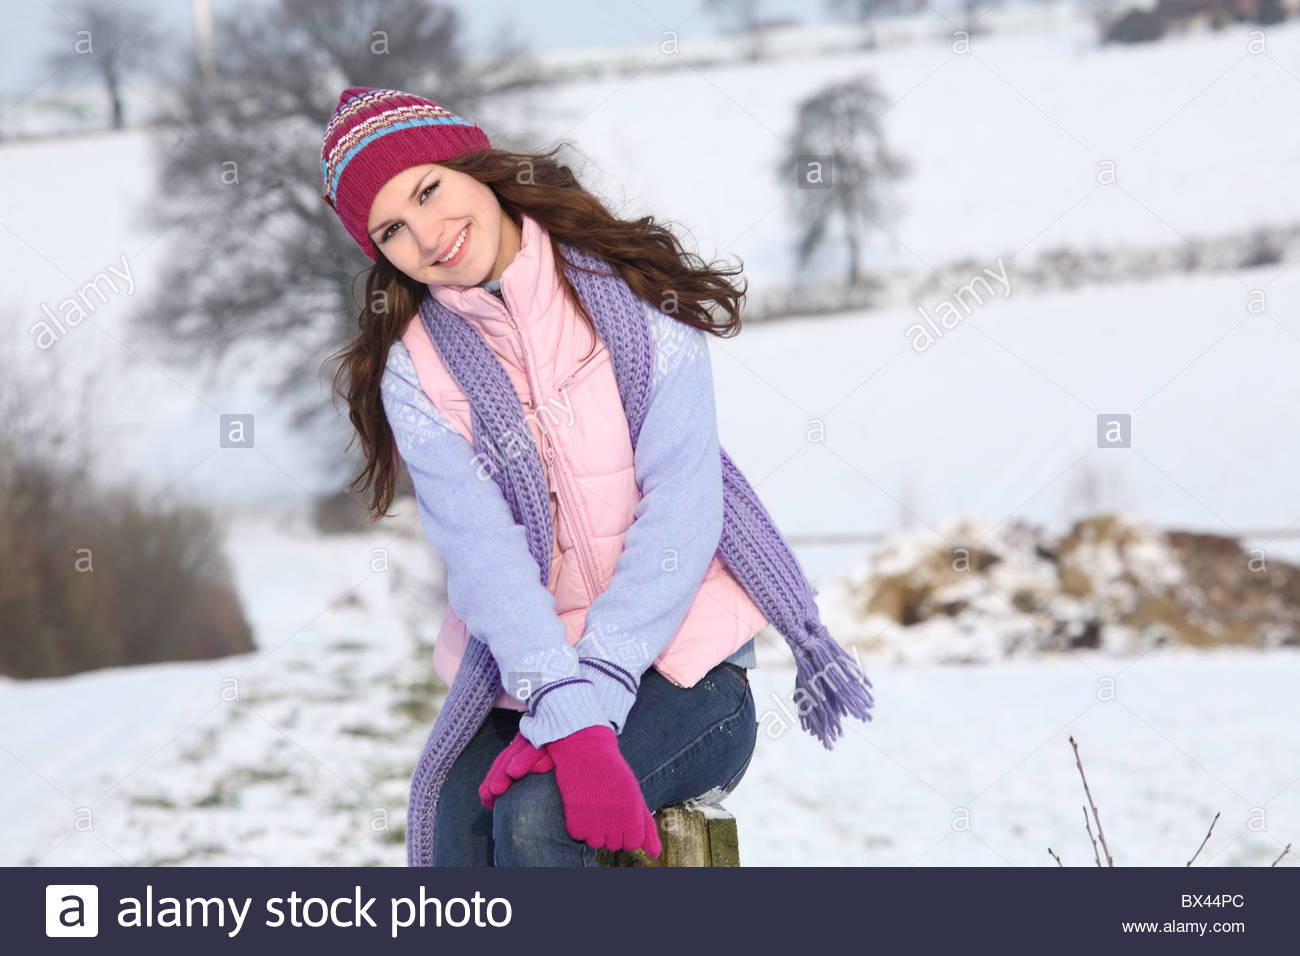 woman in winter - Stock Image